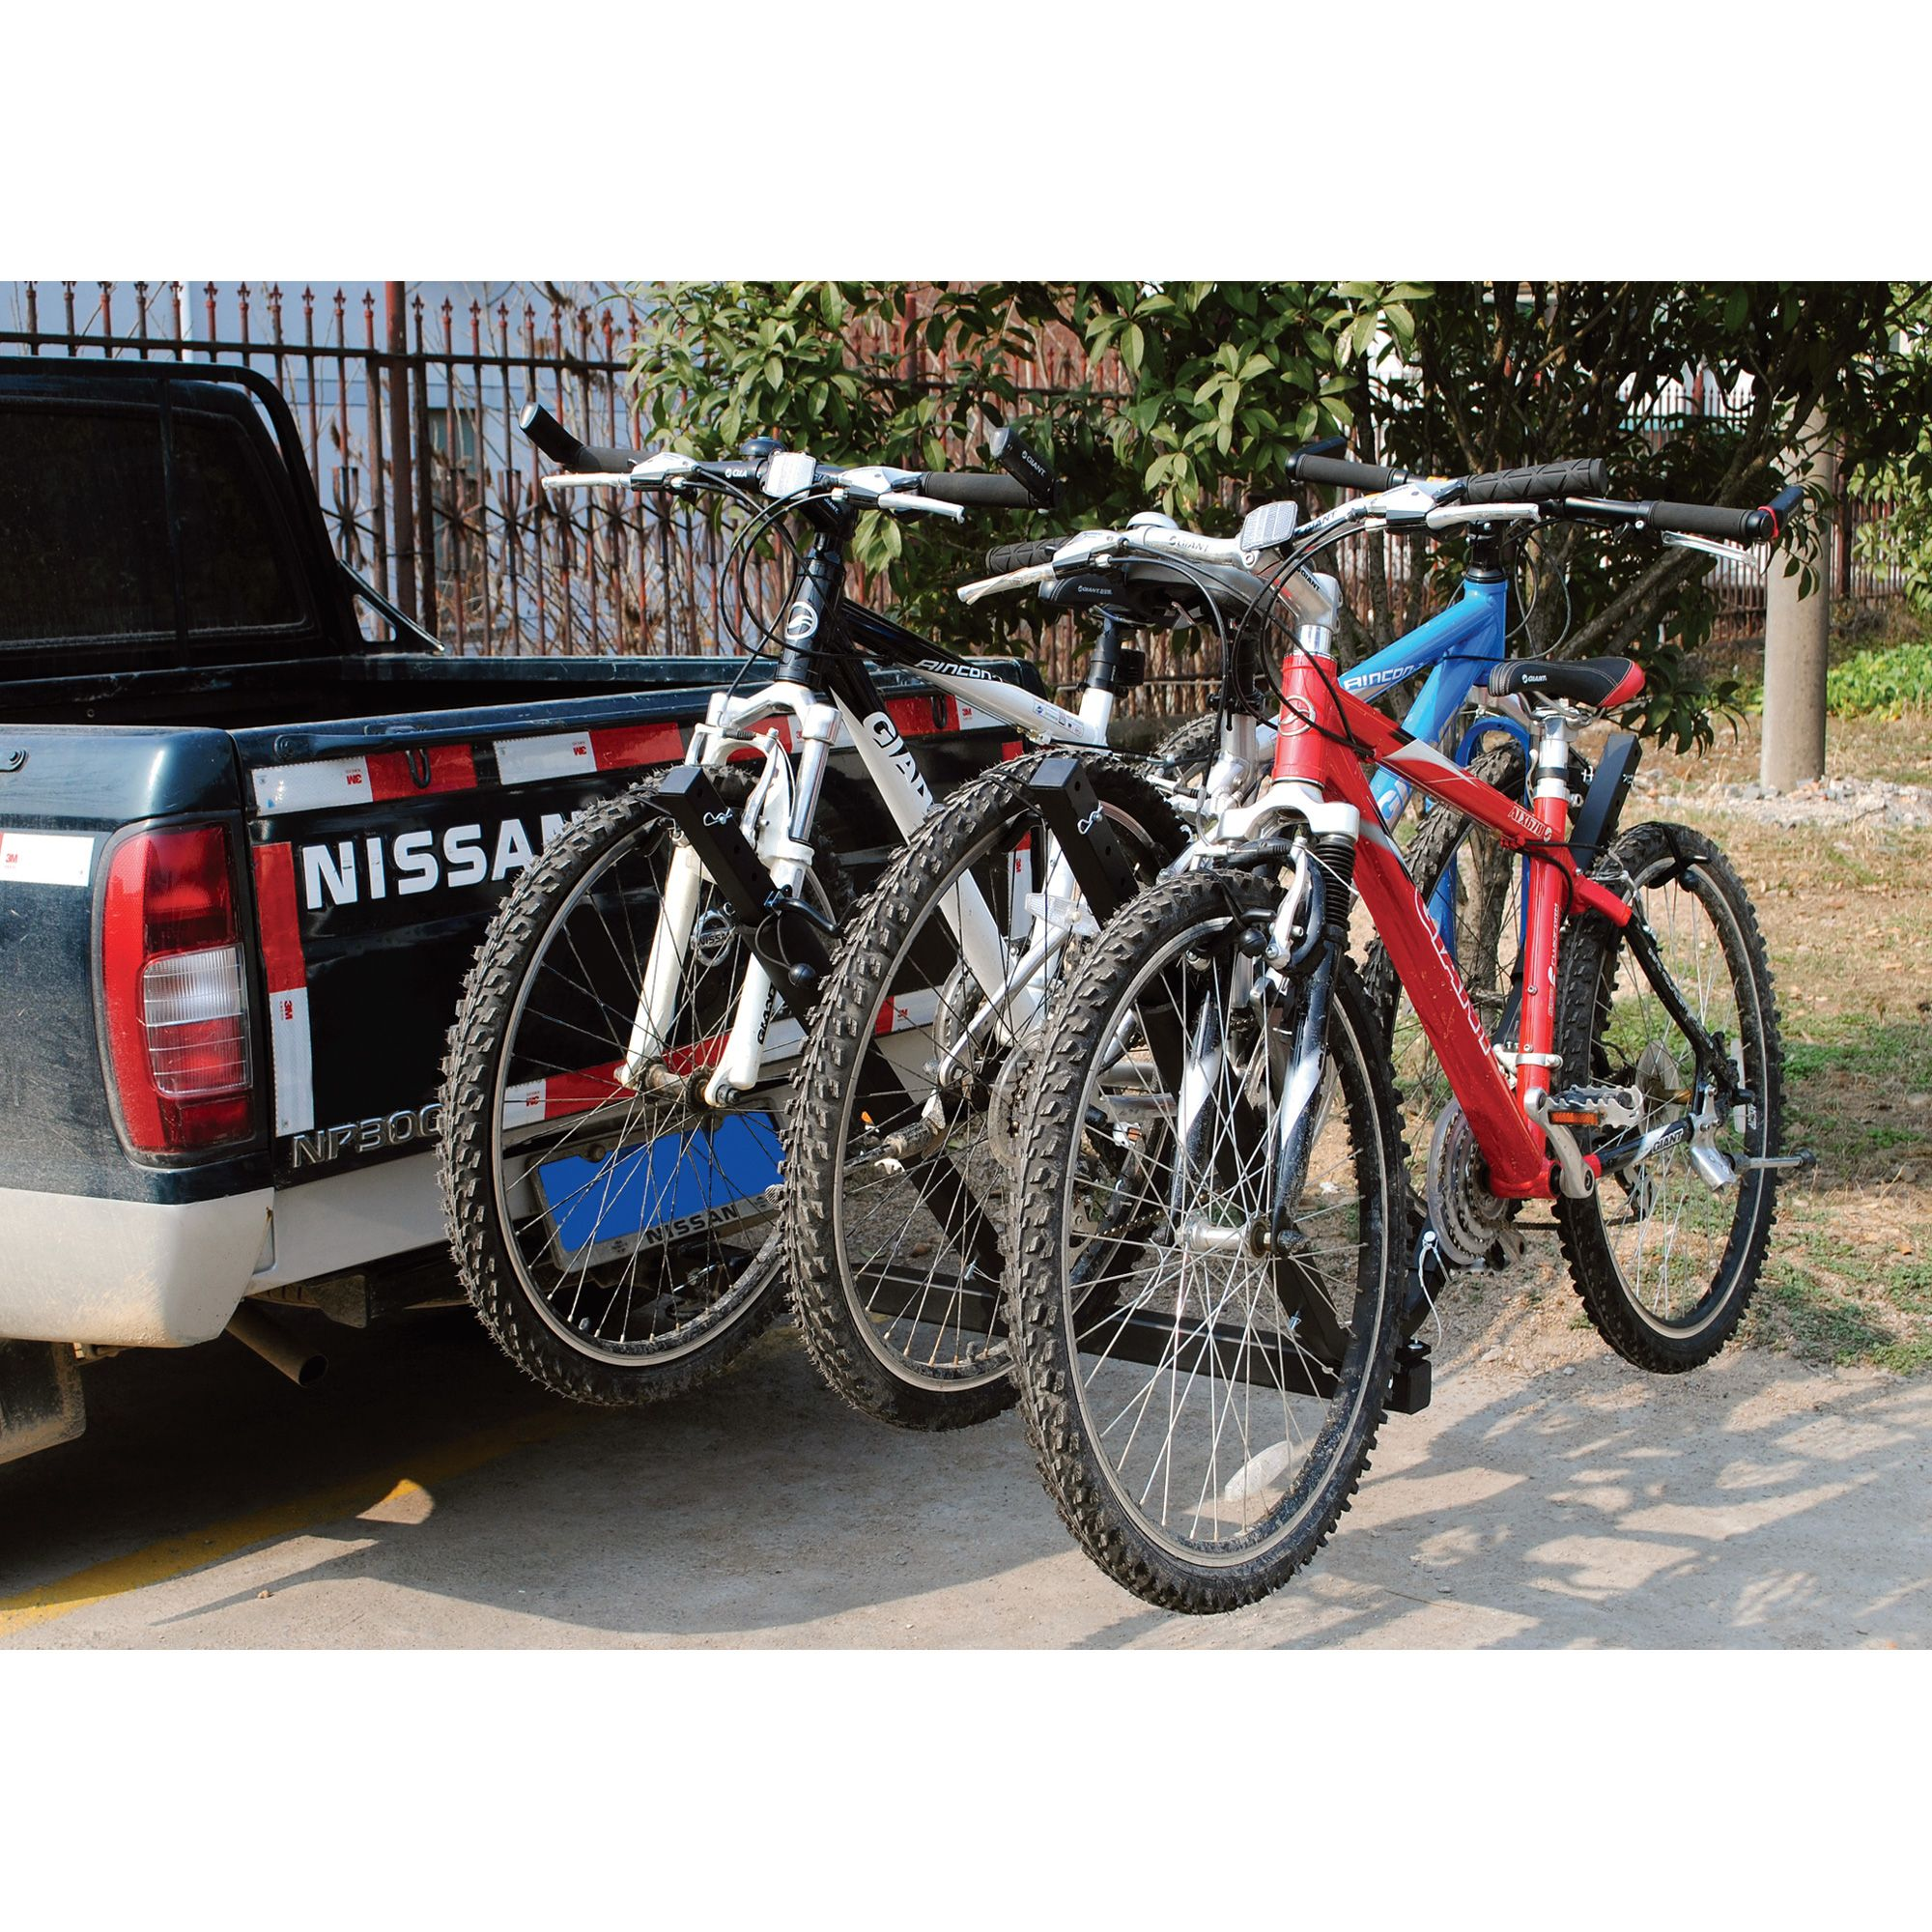 landscape and thule buy ls carry racks bike no they up so needed install carriers the option are rack with receiver online mount accessories category base towbar bikes to shop use easy is ljunghusen velocompact